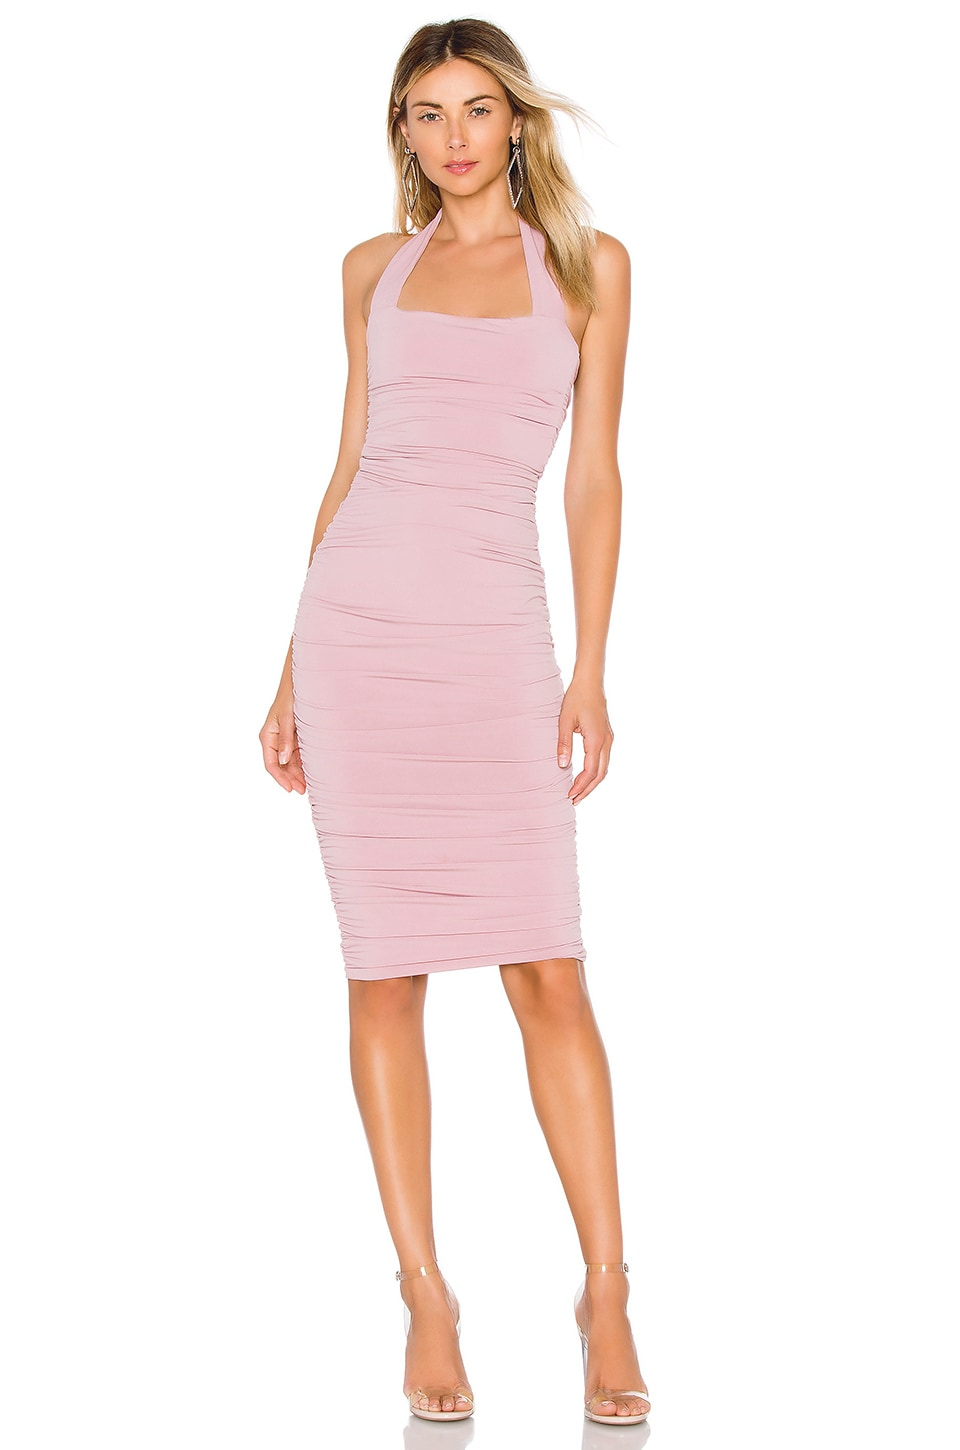 Nookie Jolie Halter Midi in Dusty Pink